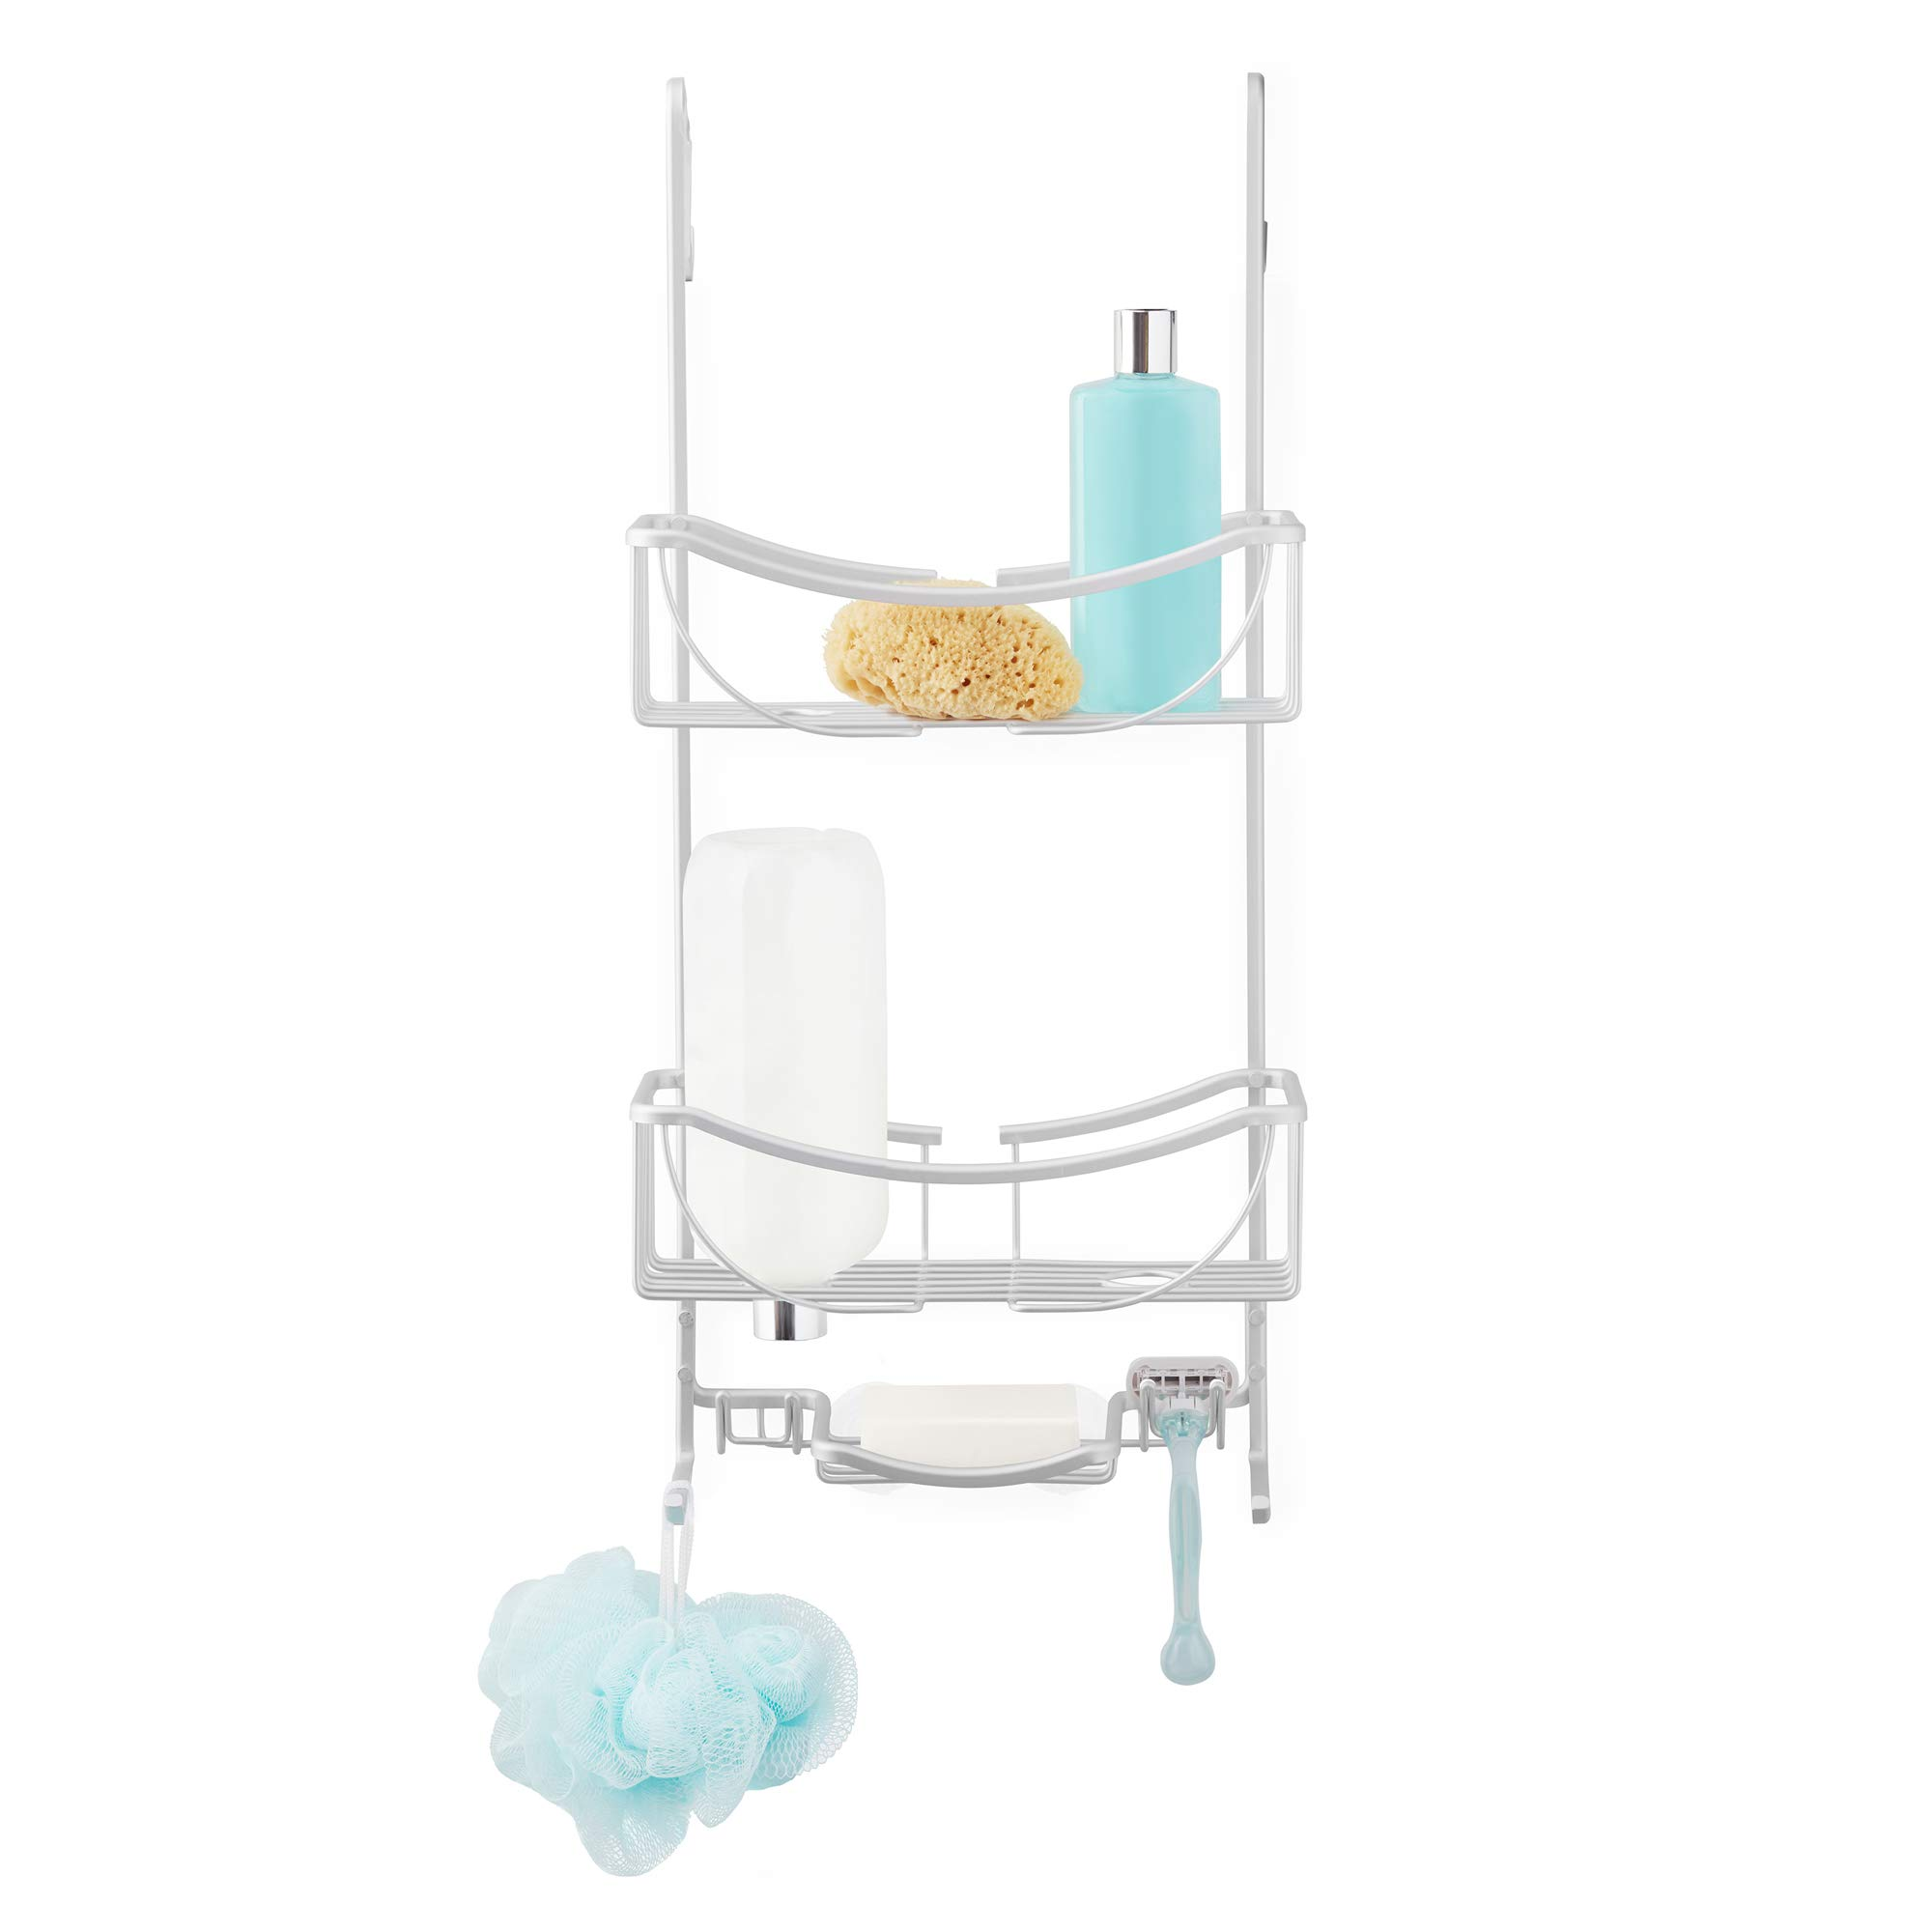 Better Living Products 13634 VENUS 3-Tier Over the Shower Door Caddy, Grey by Better Living